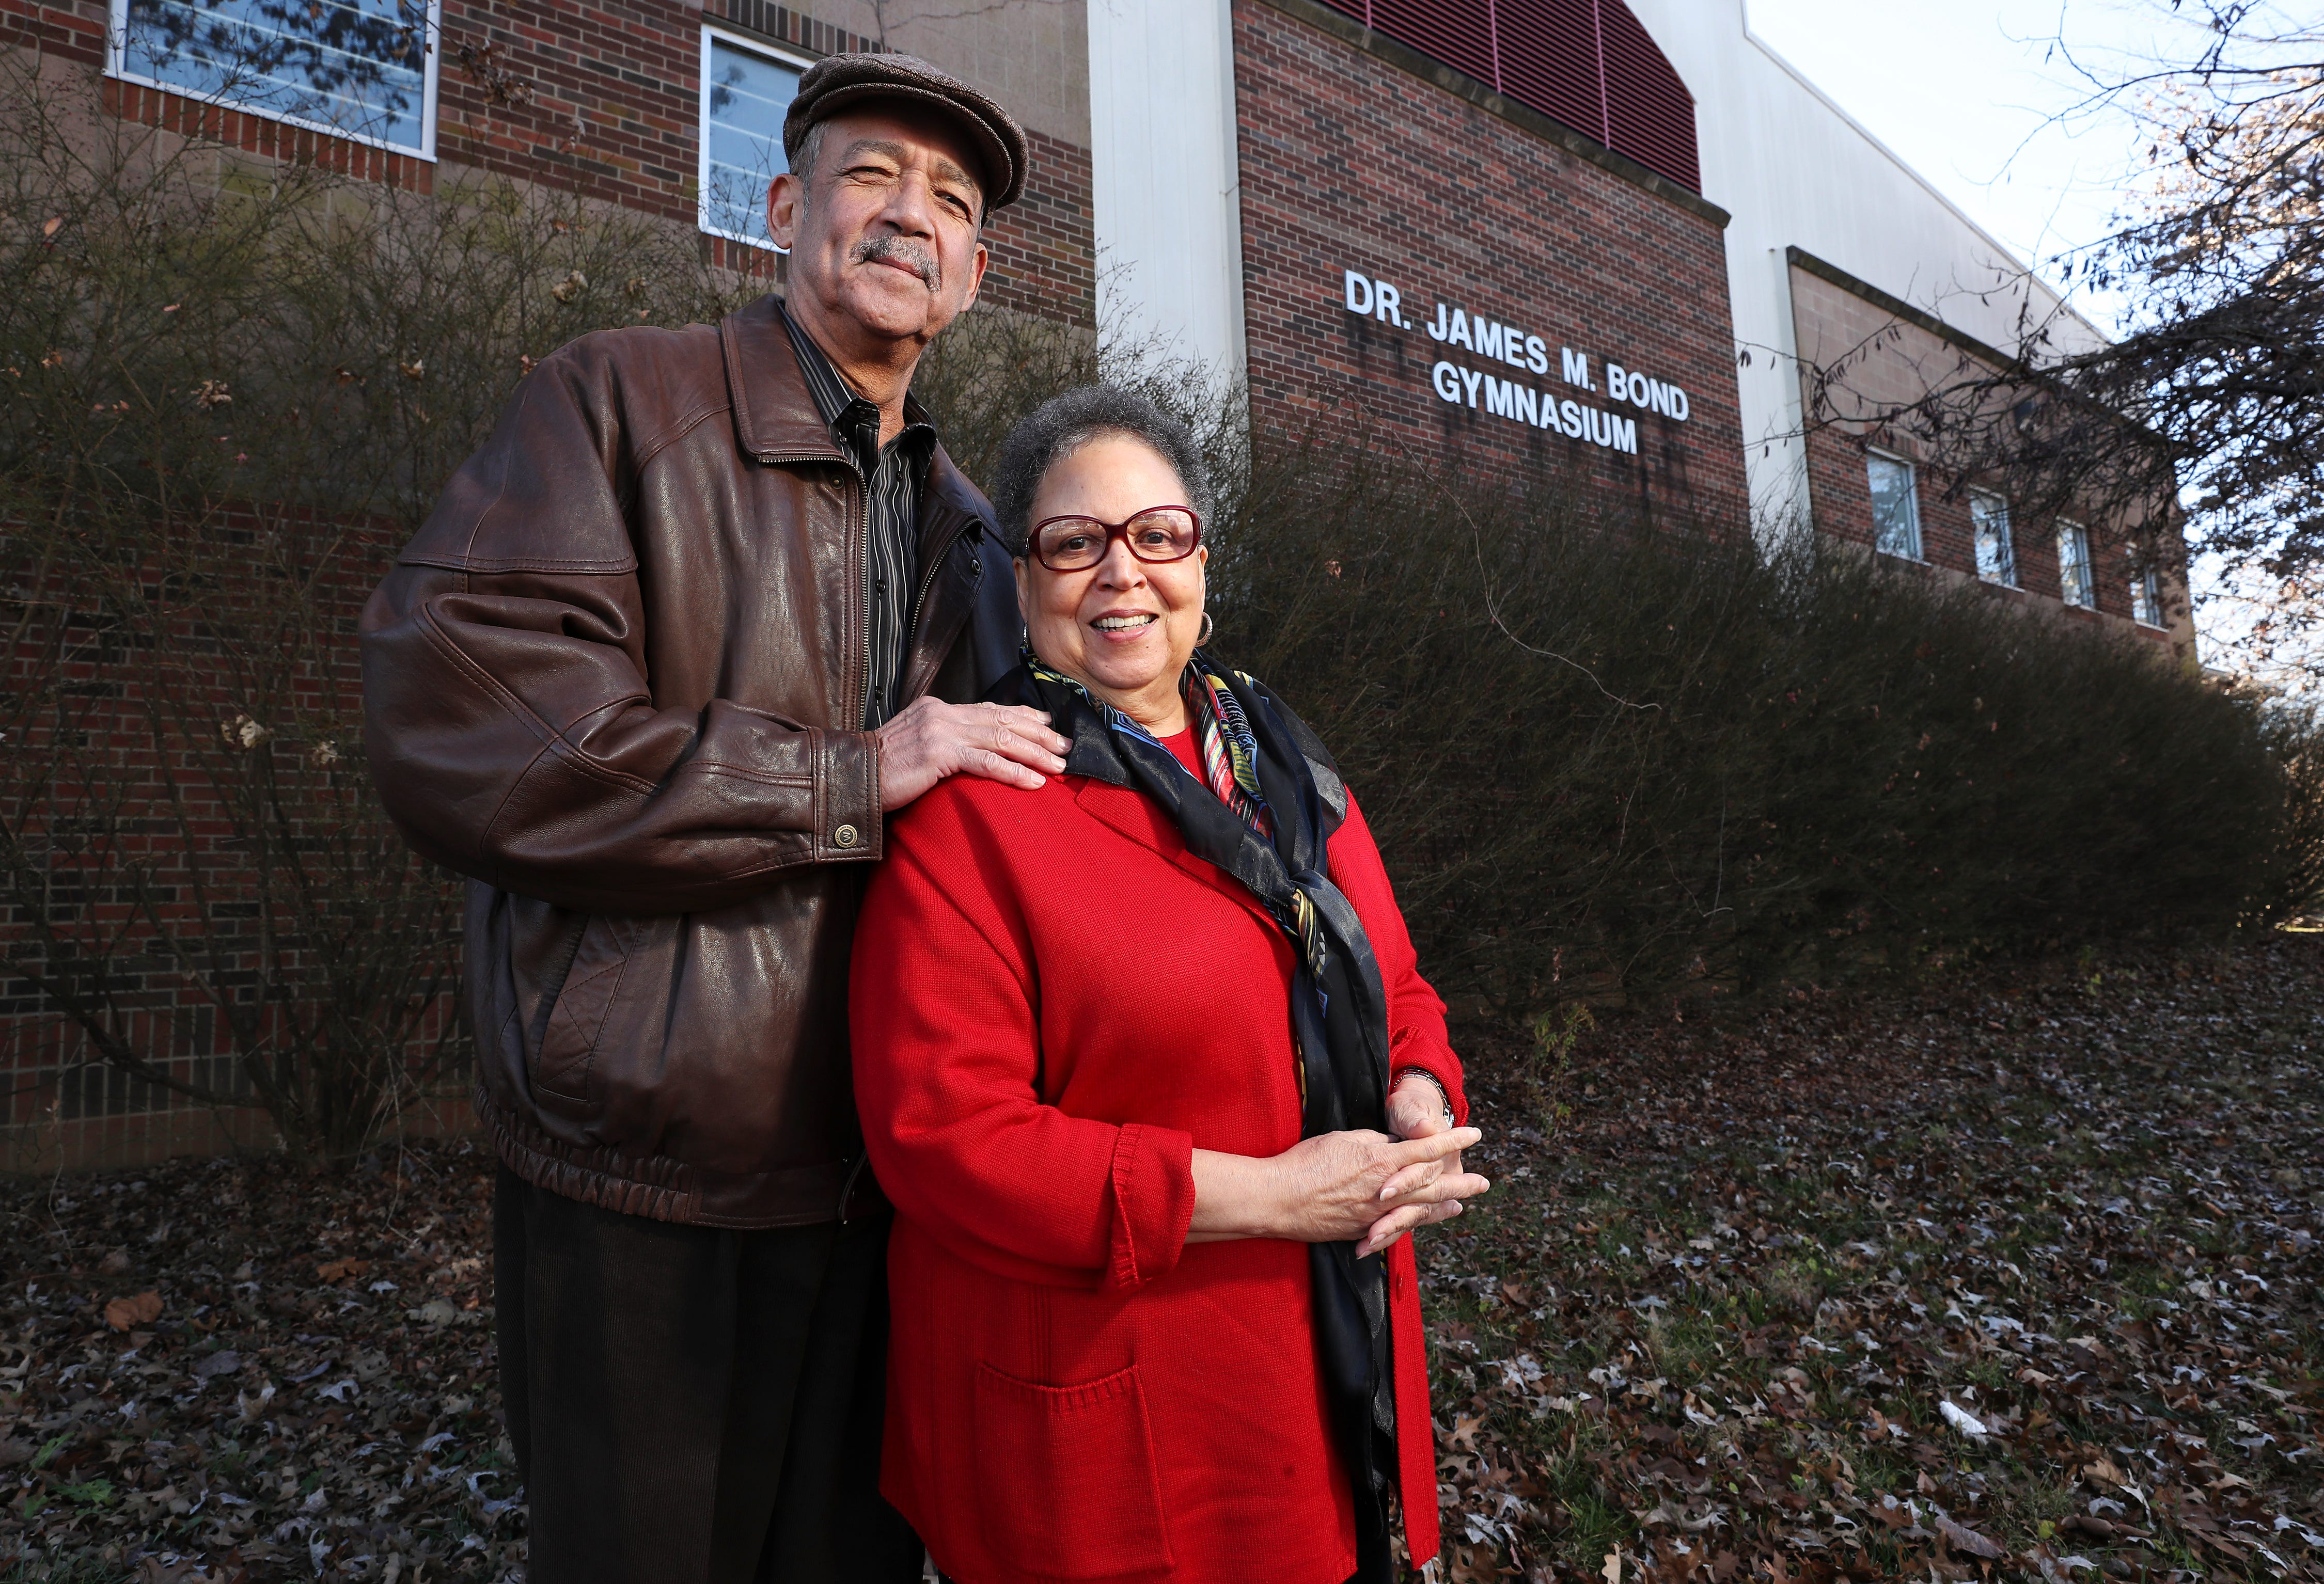 Former educator Deanna Shobe Tinsley, right, and her husband Max Tinsley in front of the Dr. James M. Bond Gymnasium at Byck Elementary School in west Louisville. The gym is named for Max's grandfather. Dec. 22, 2020